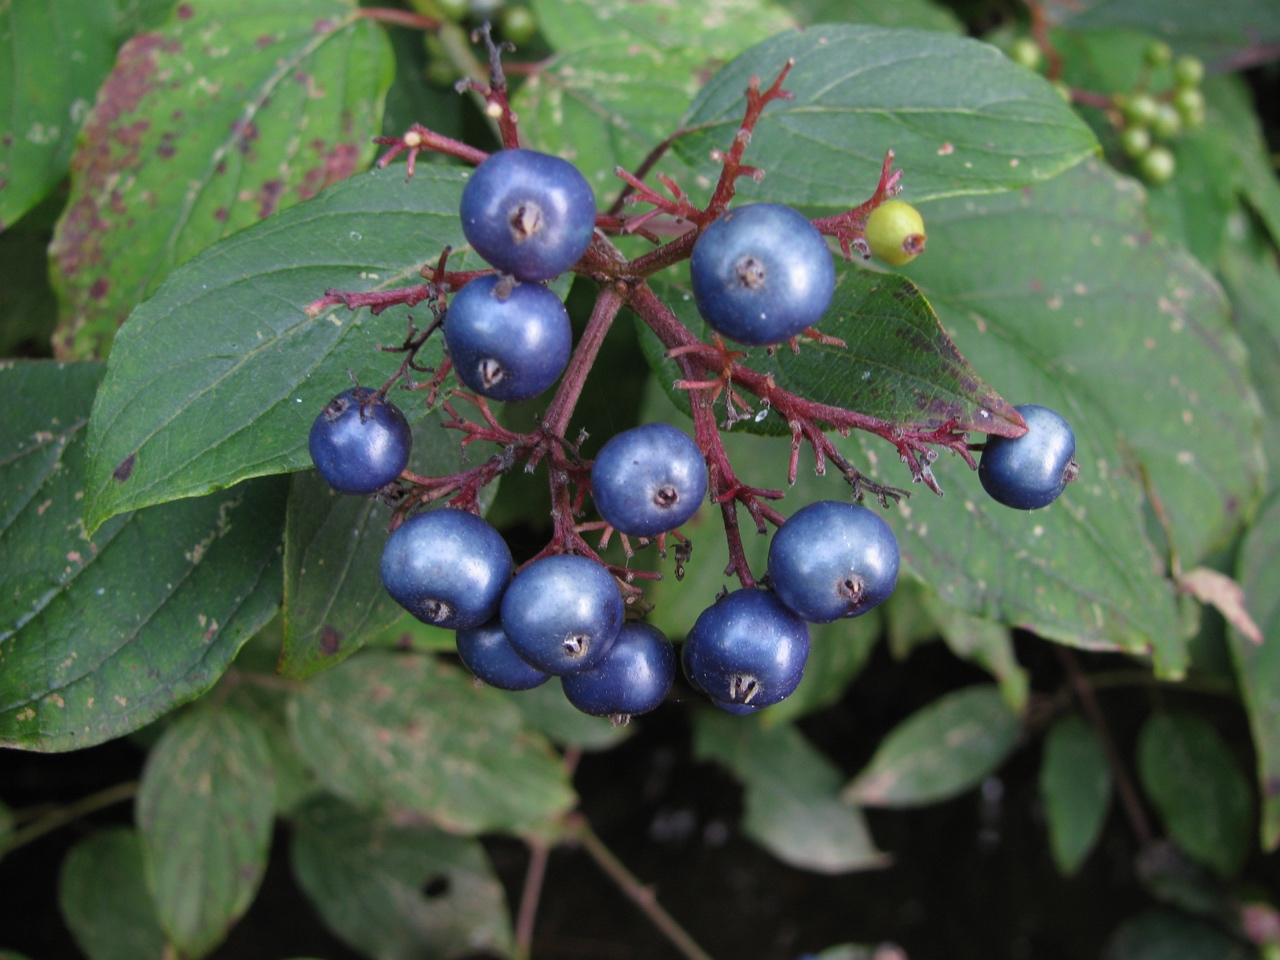 The Scientific Name is Cornus amomum [= Swida amomum]. You will likely hear them called Silky Dogwood. This picture shows the Blue colored fruits in mid-August of Cornus amomum [= Swida amomum]